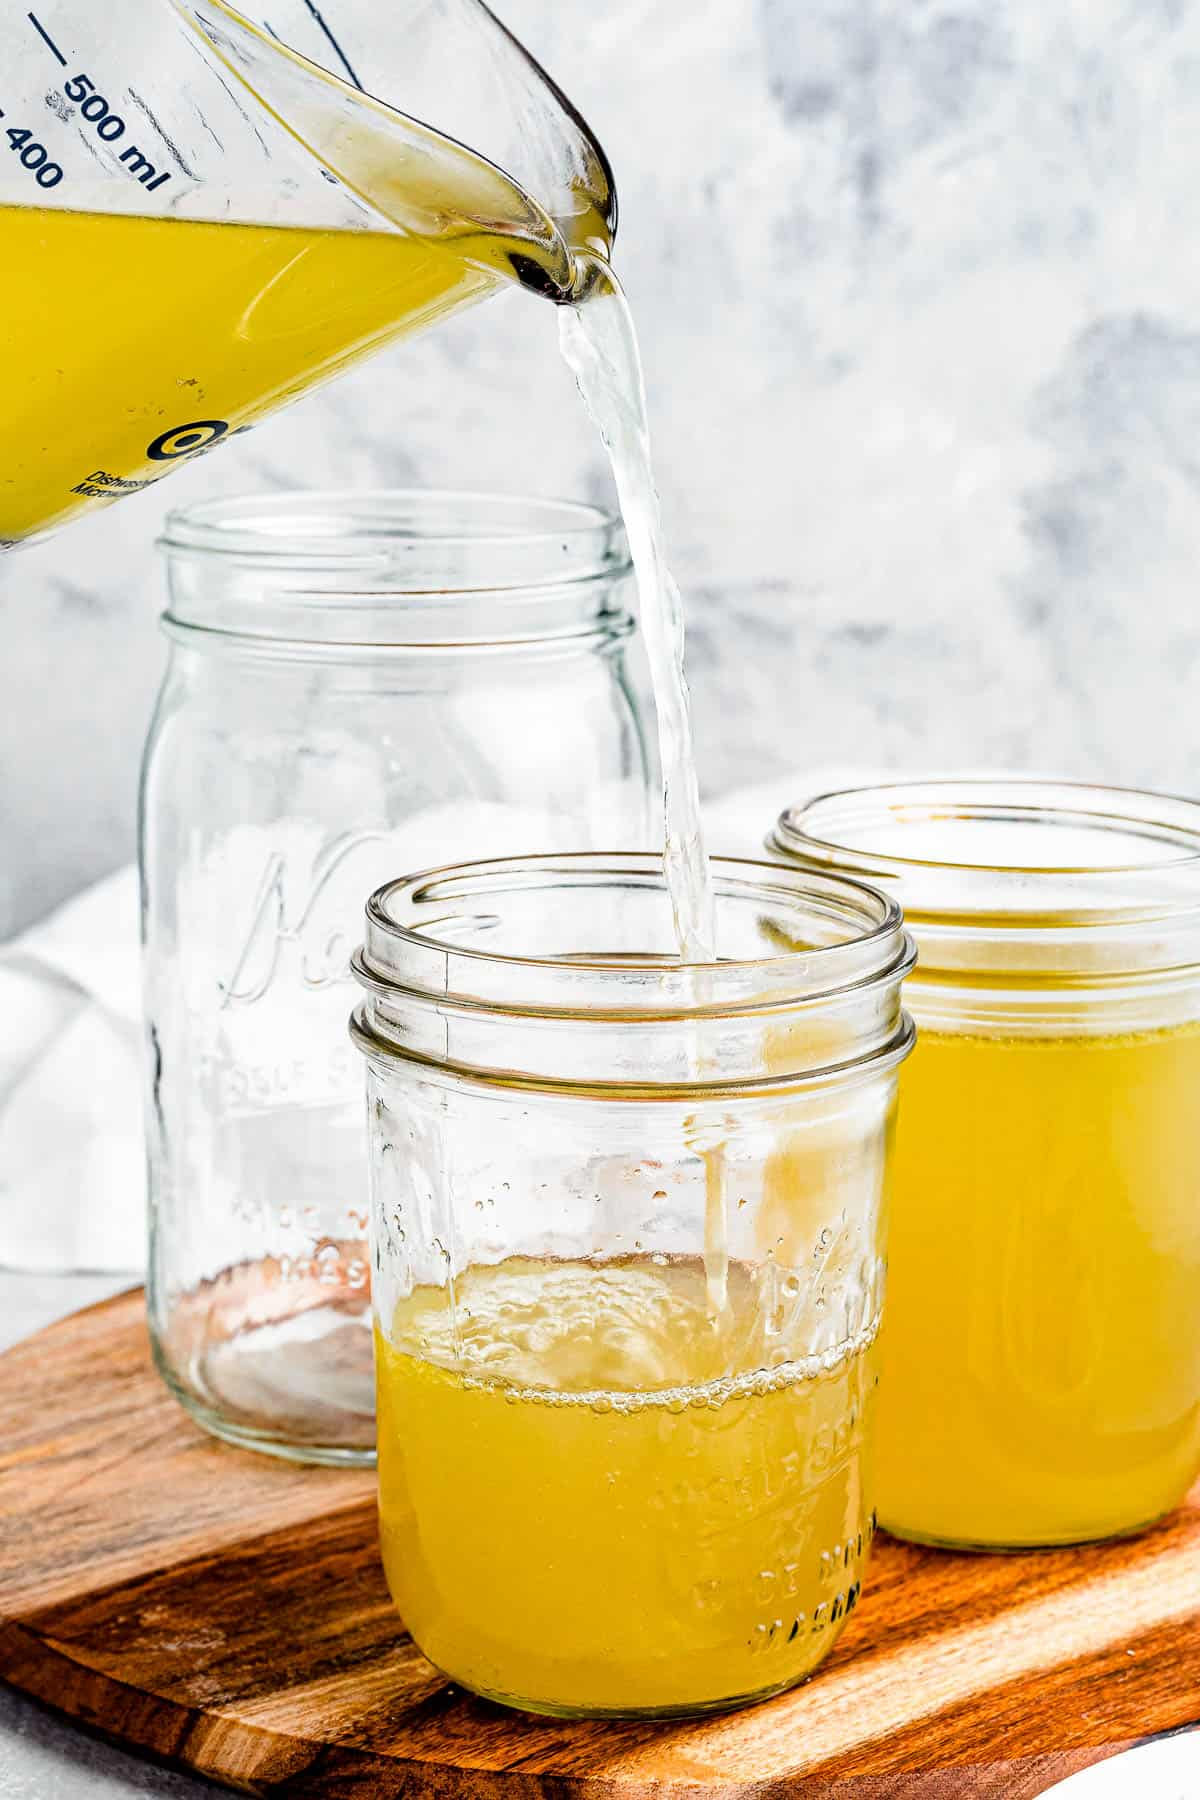 Chicken broth being poured from a large measuring cup into several jars.